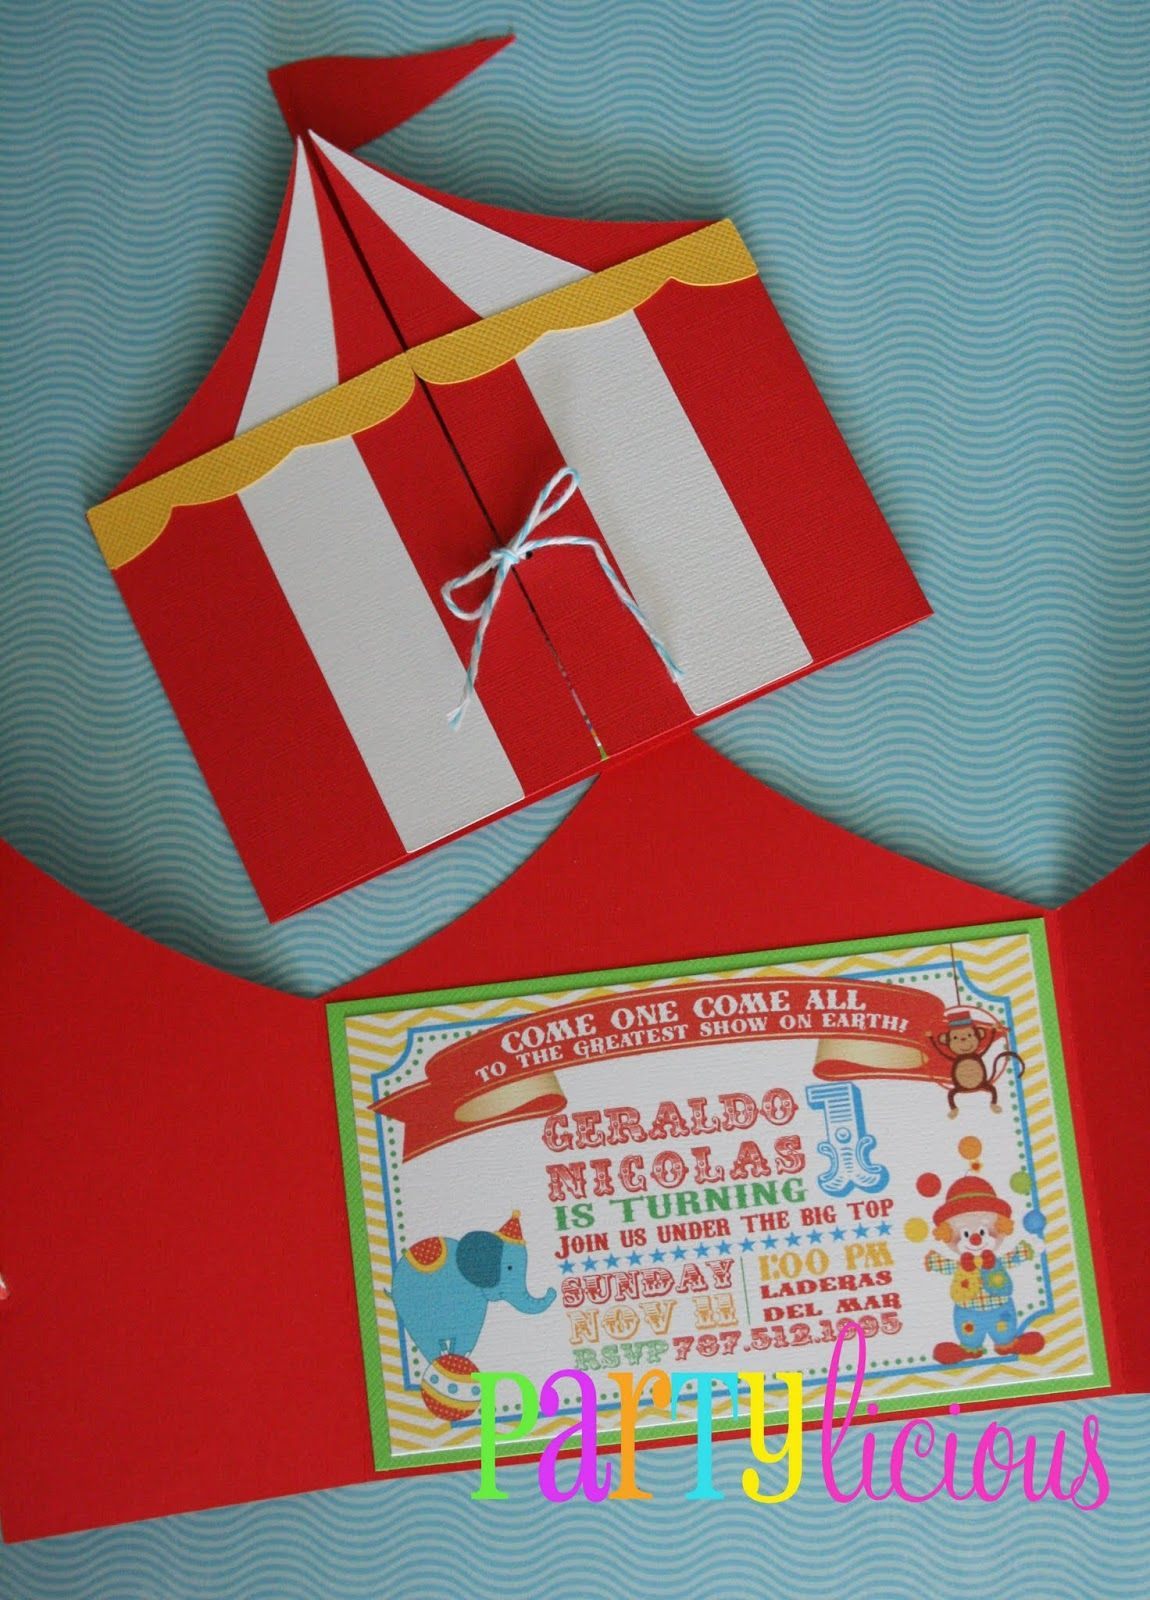 Circus theme & I hope these arenu0027t for resale since the template is an exact copy ...